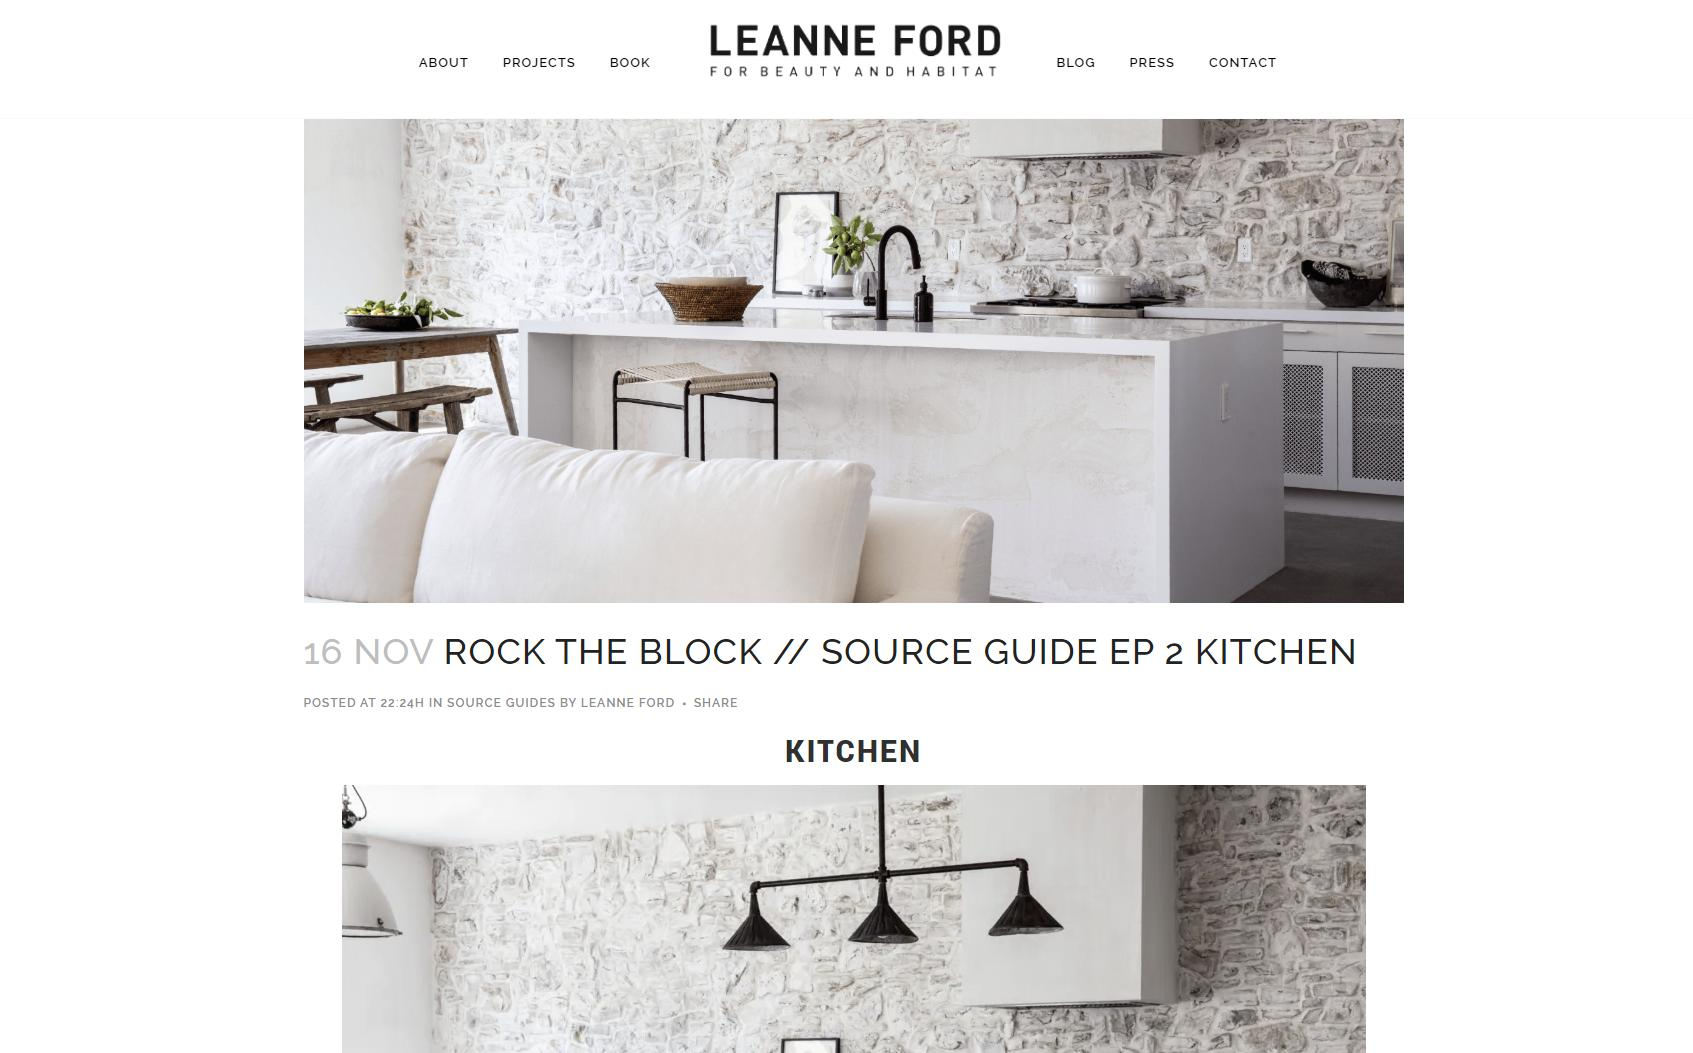 Leanne Ford Blog – November 22nd, 2019